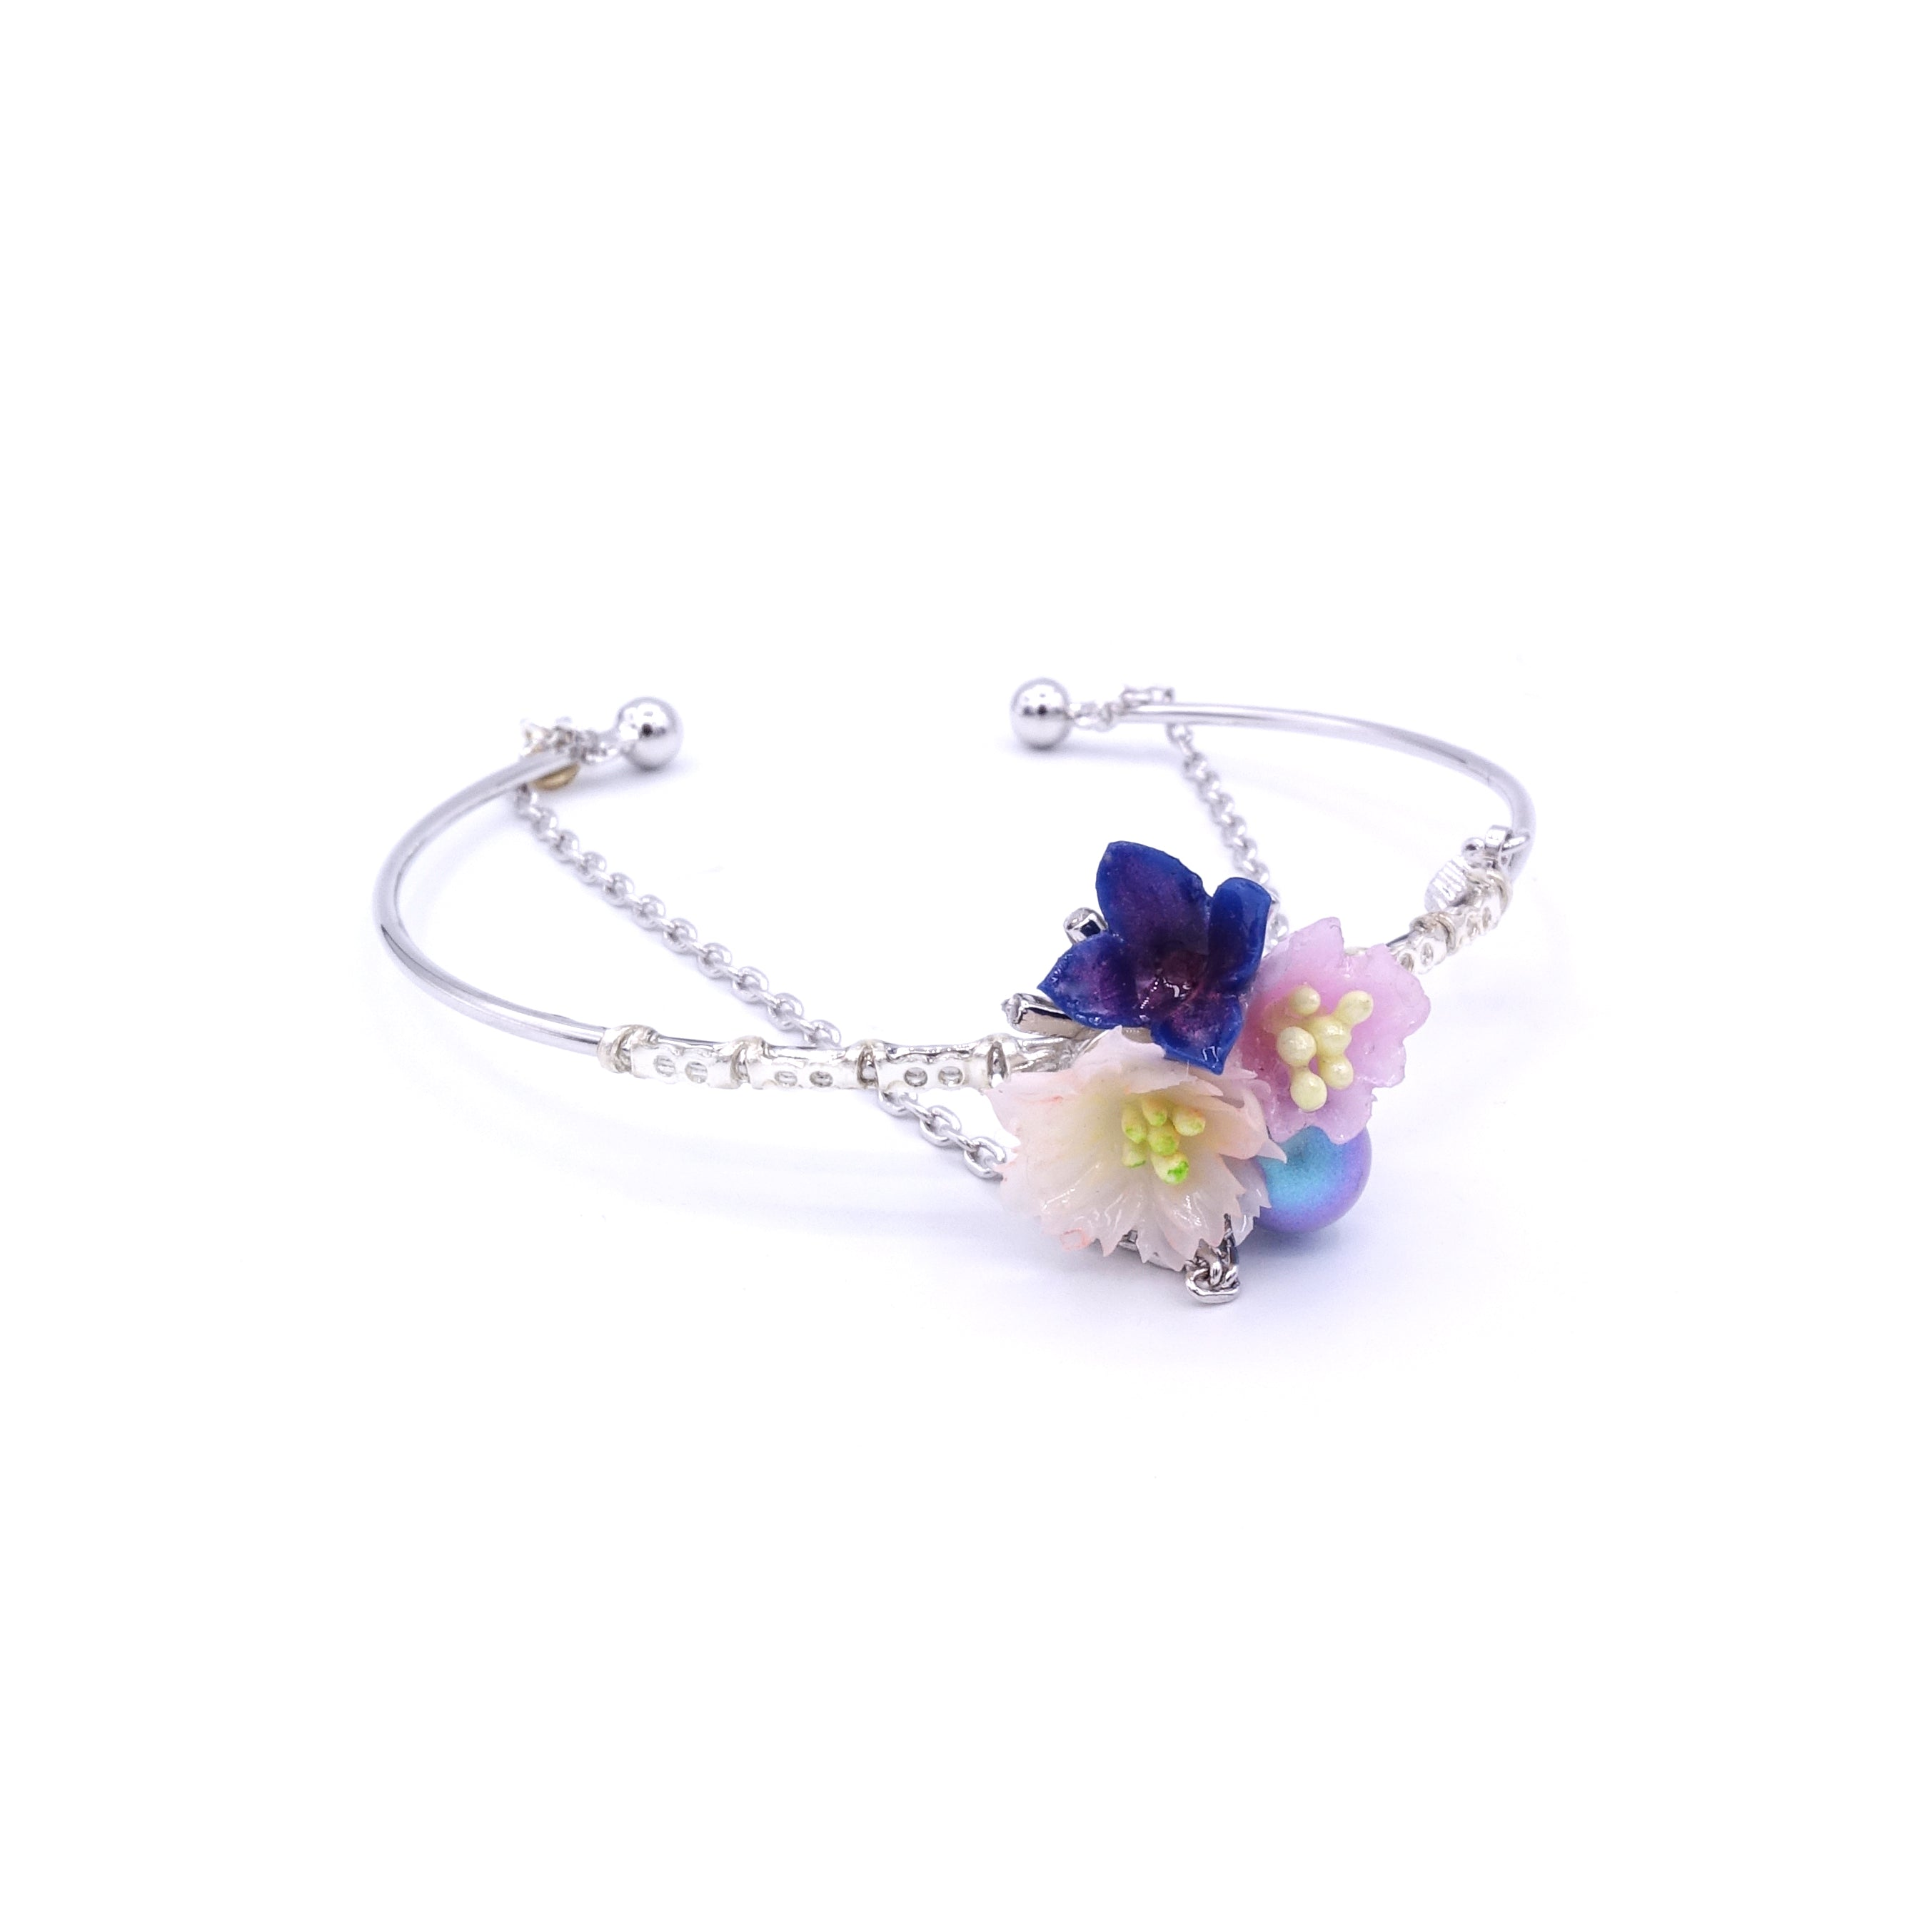 SAKURA COLLECTION Night-Sakura Crystal Floral Silver-plated Bangle